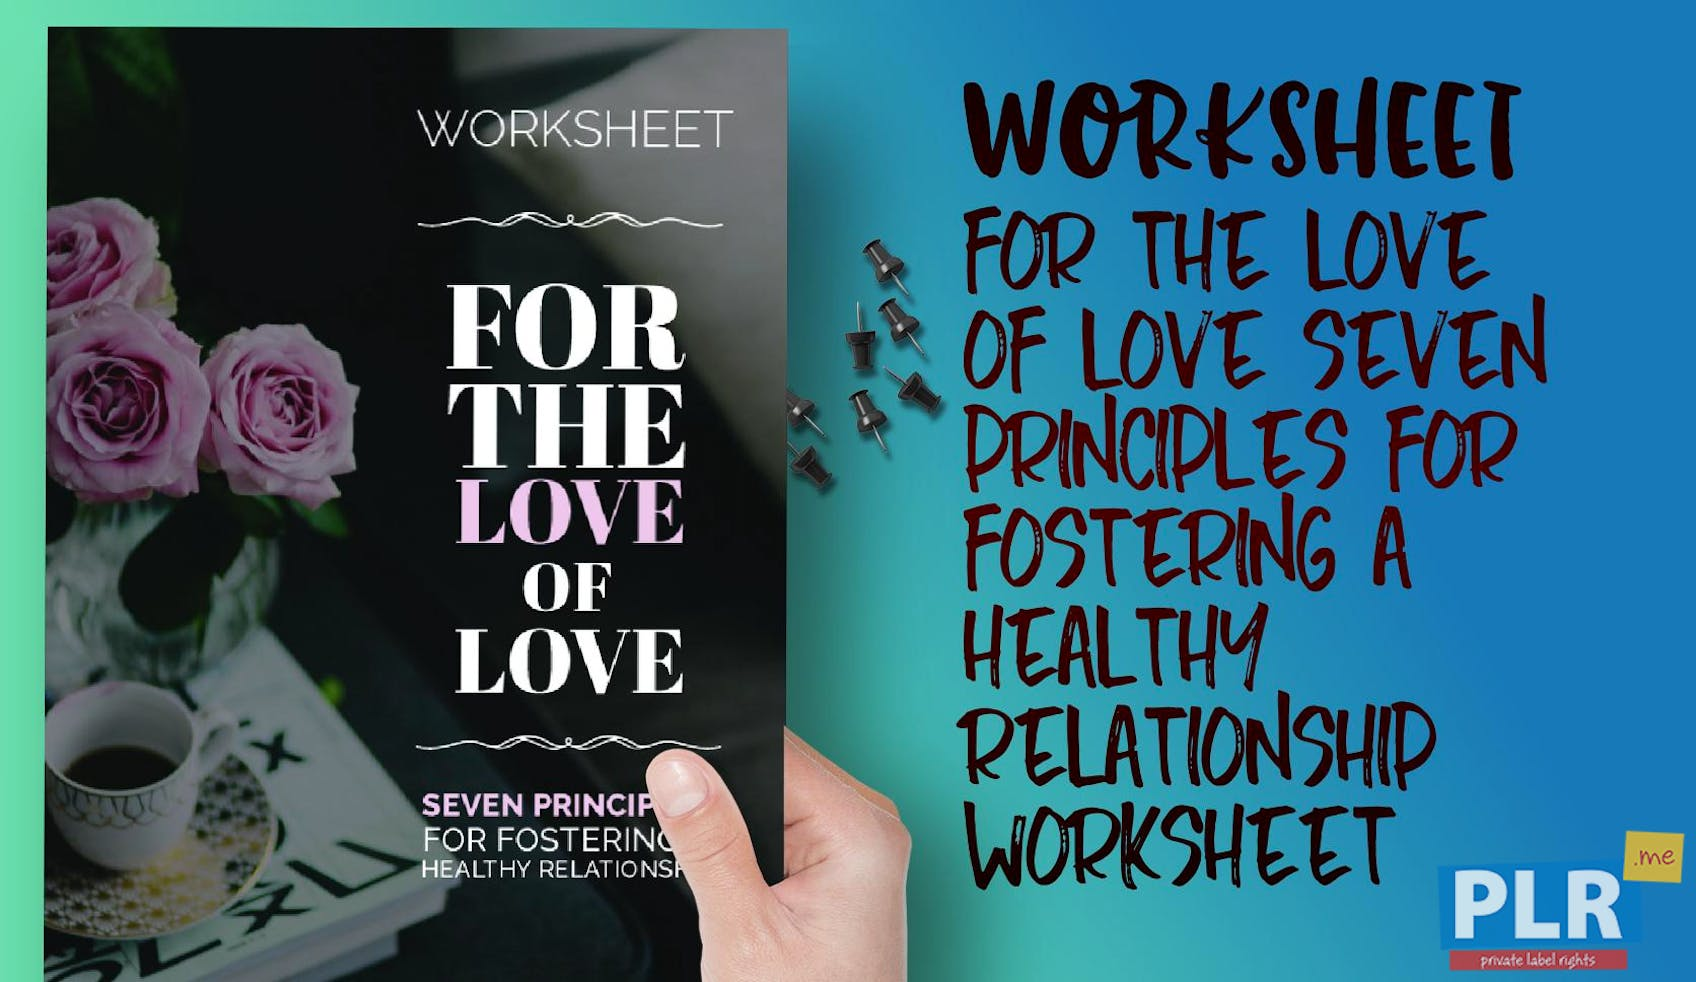 For The Love Of Love Seven Principles For Fostering A Healthy Relationship Worksheet